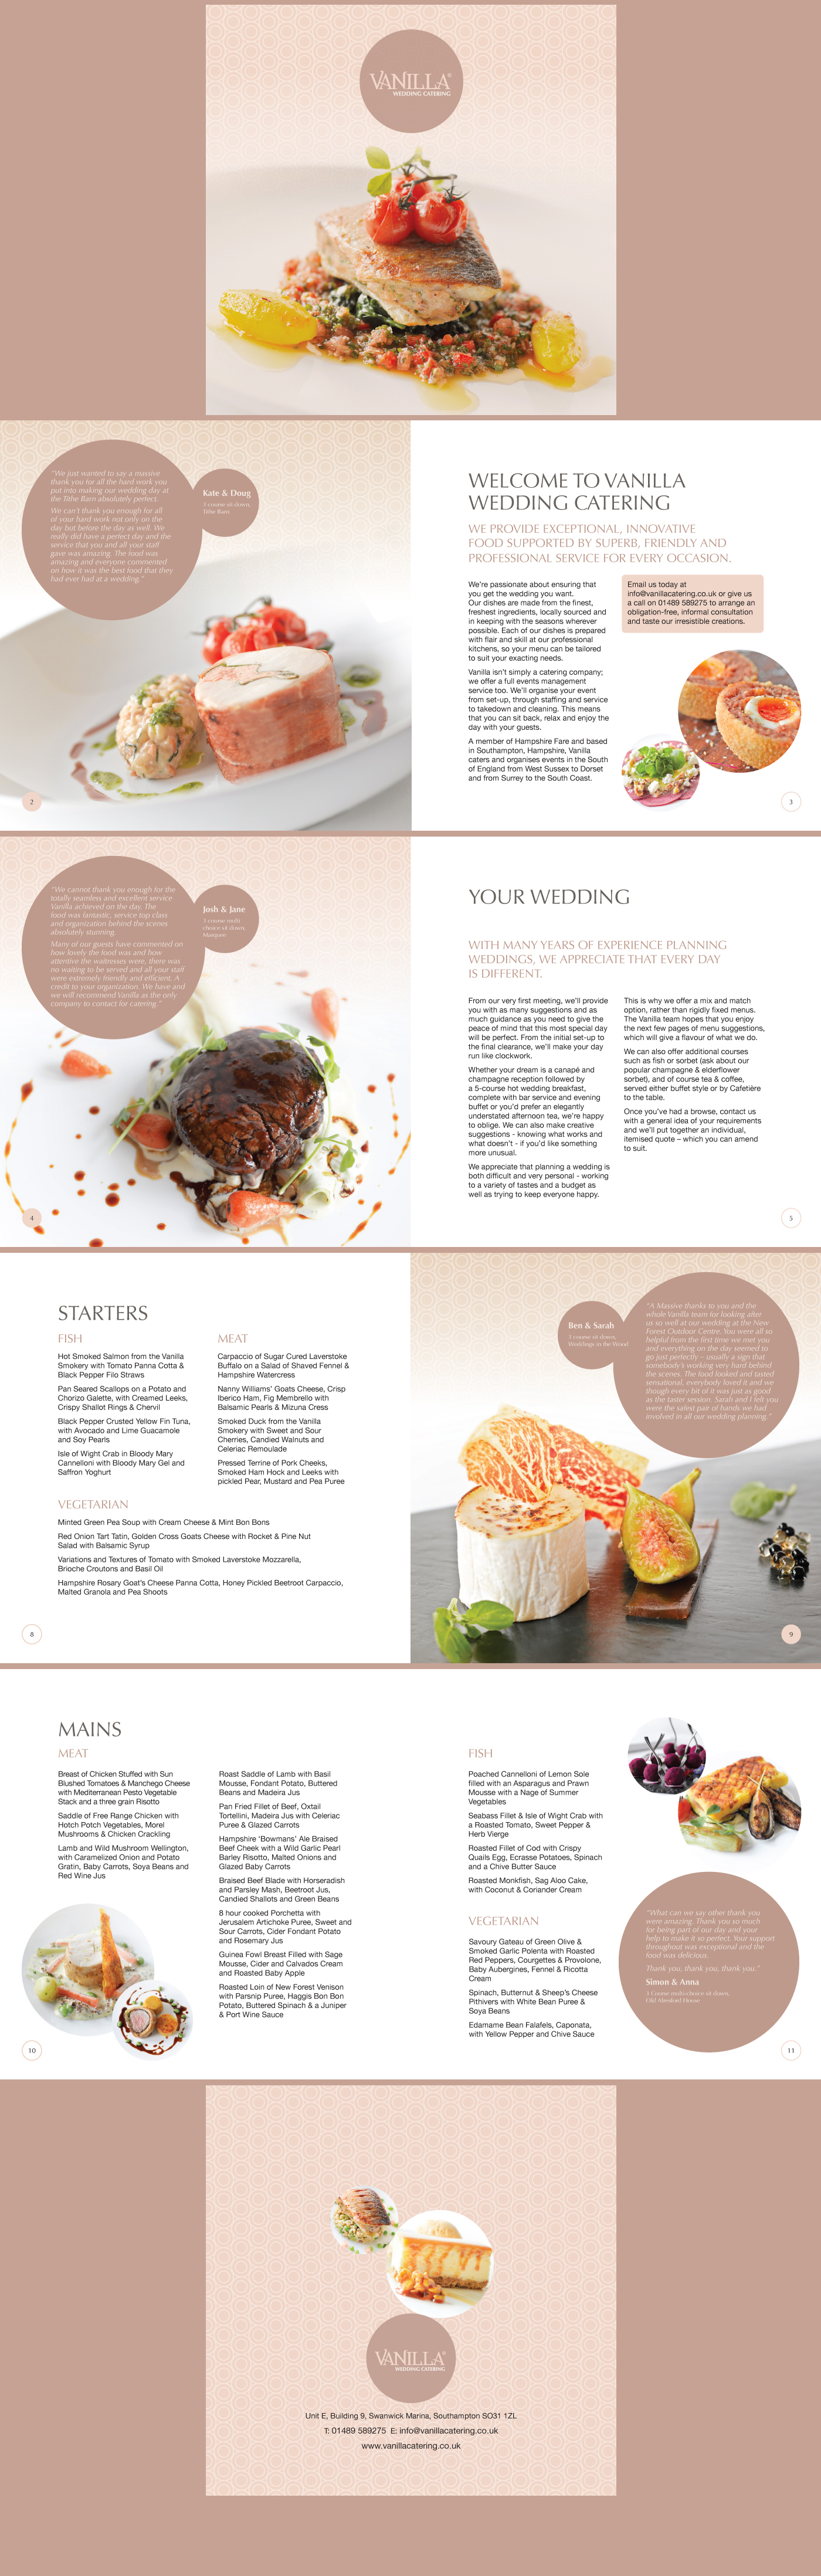 Vanillas New Wedding Catering Brochure Layout Designed By Www - Catering brochure templates